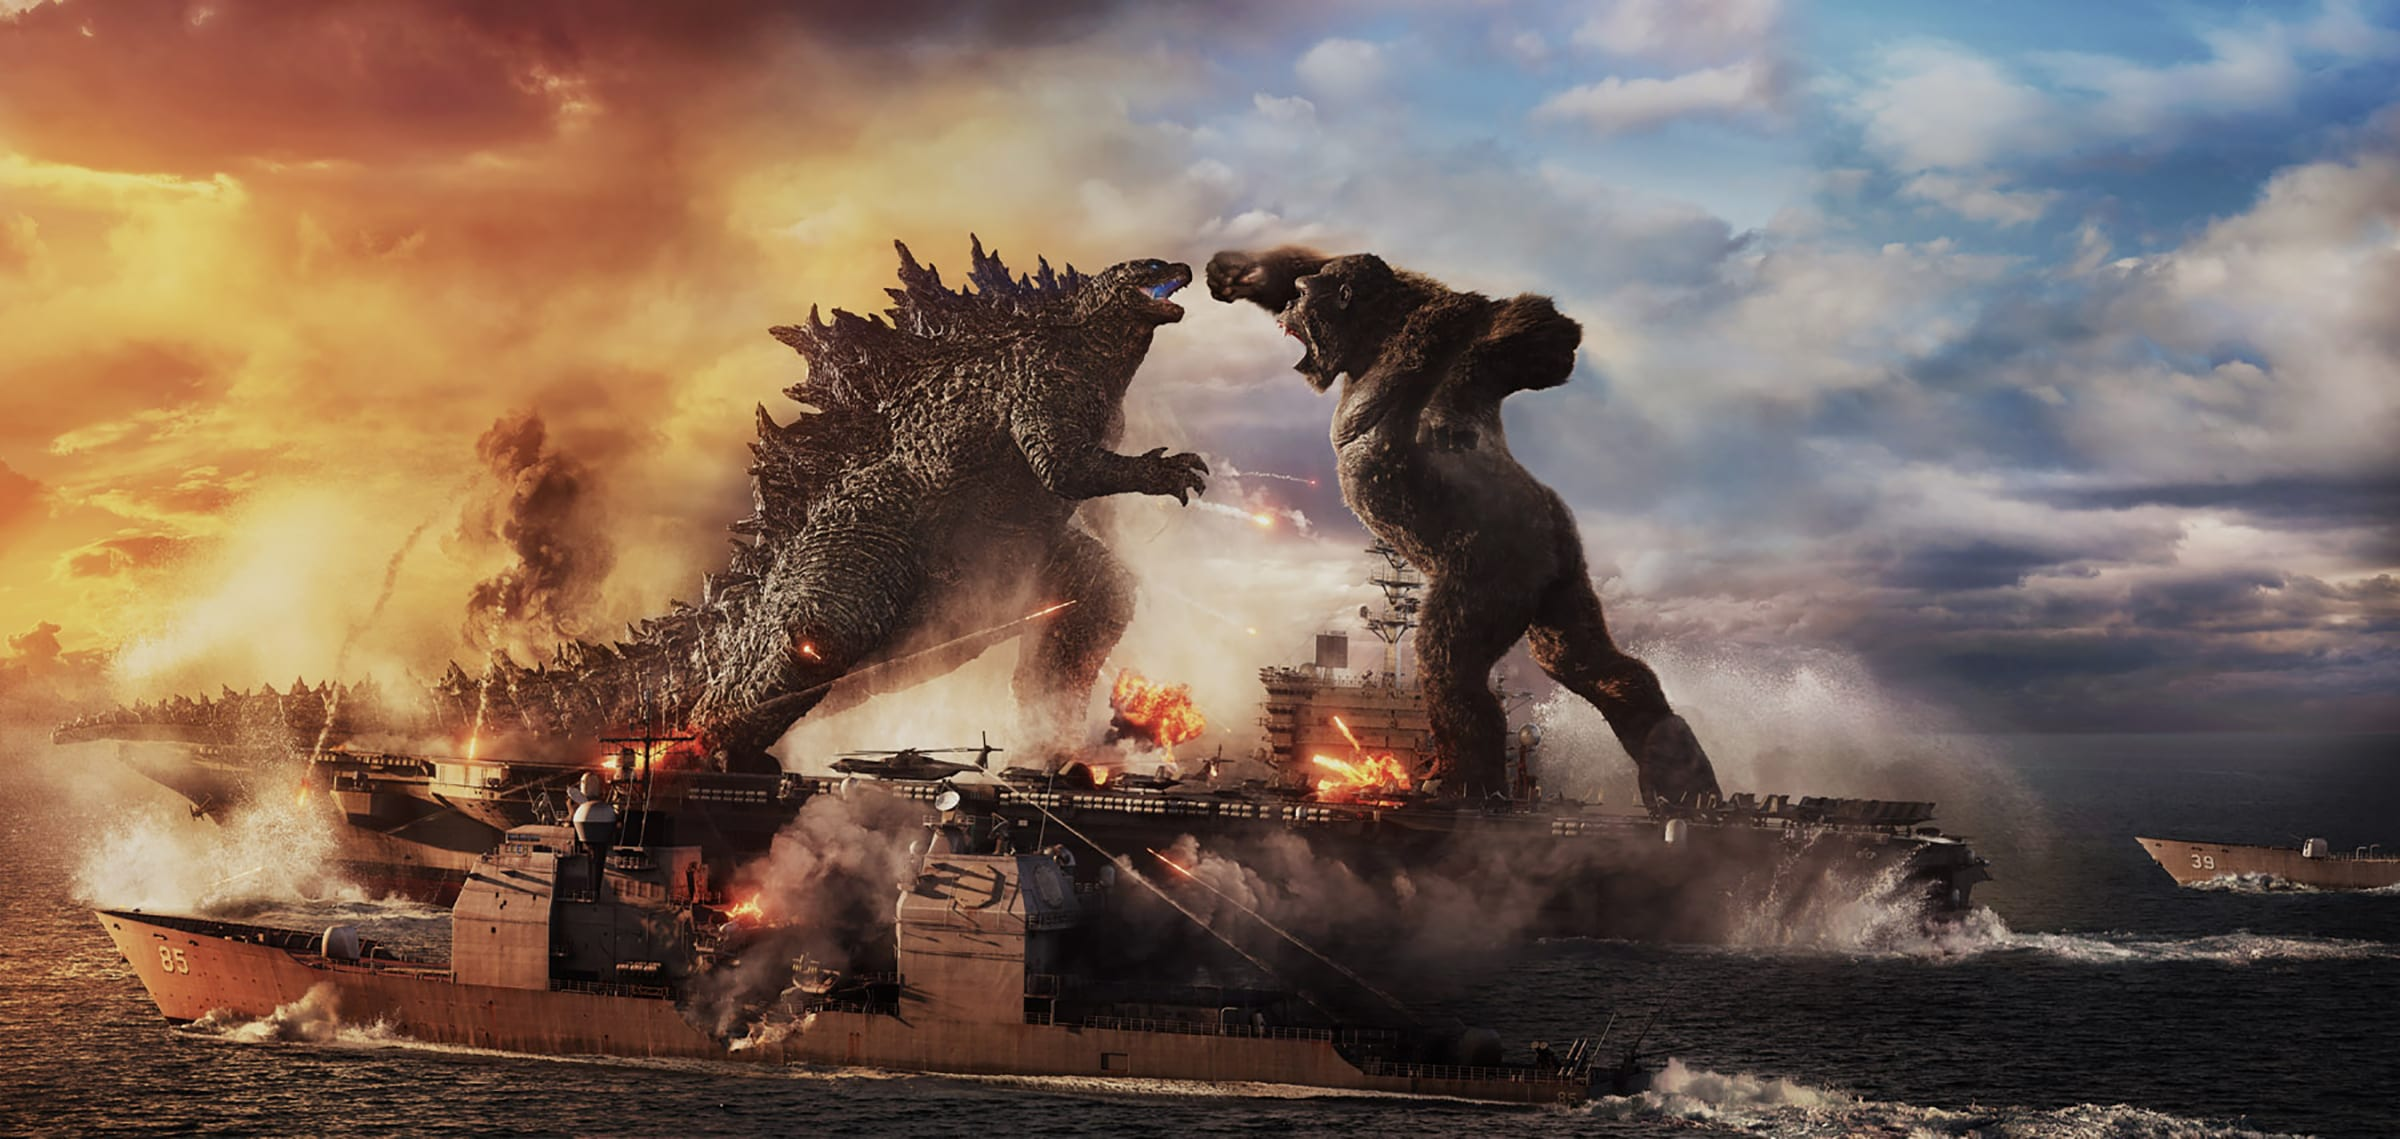 Godzilla vs Kong: analisi del trailer dell'atteso monster movie